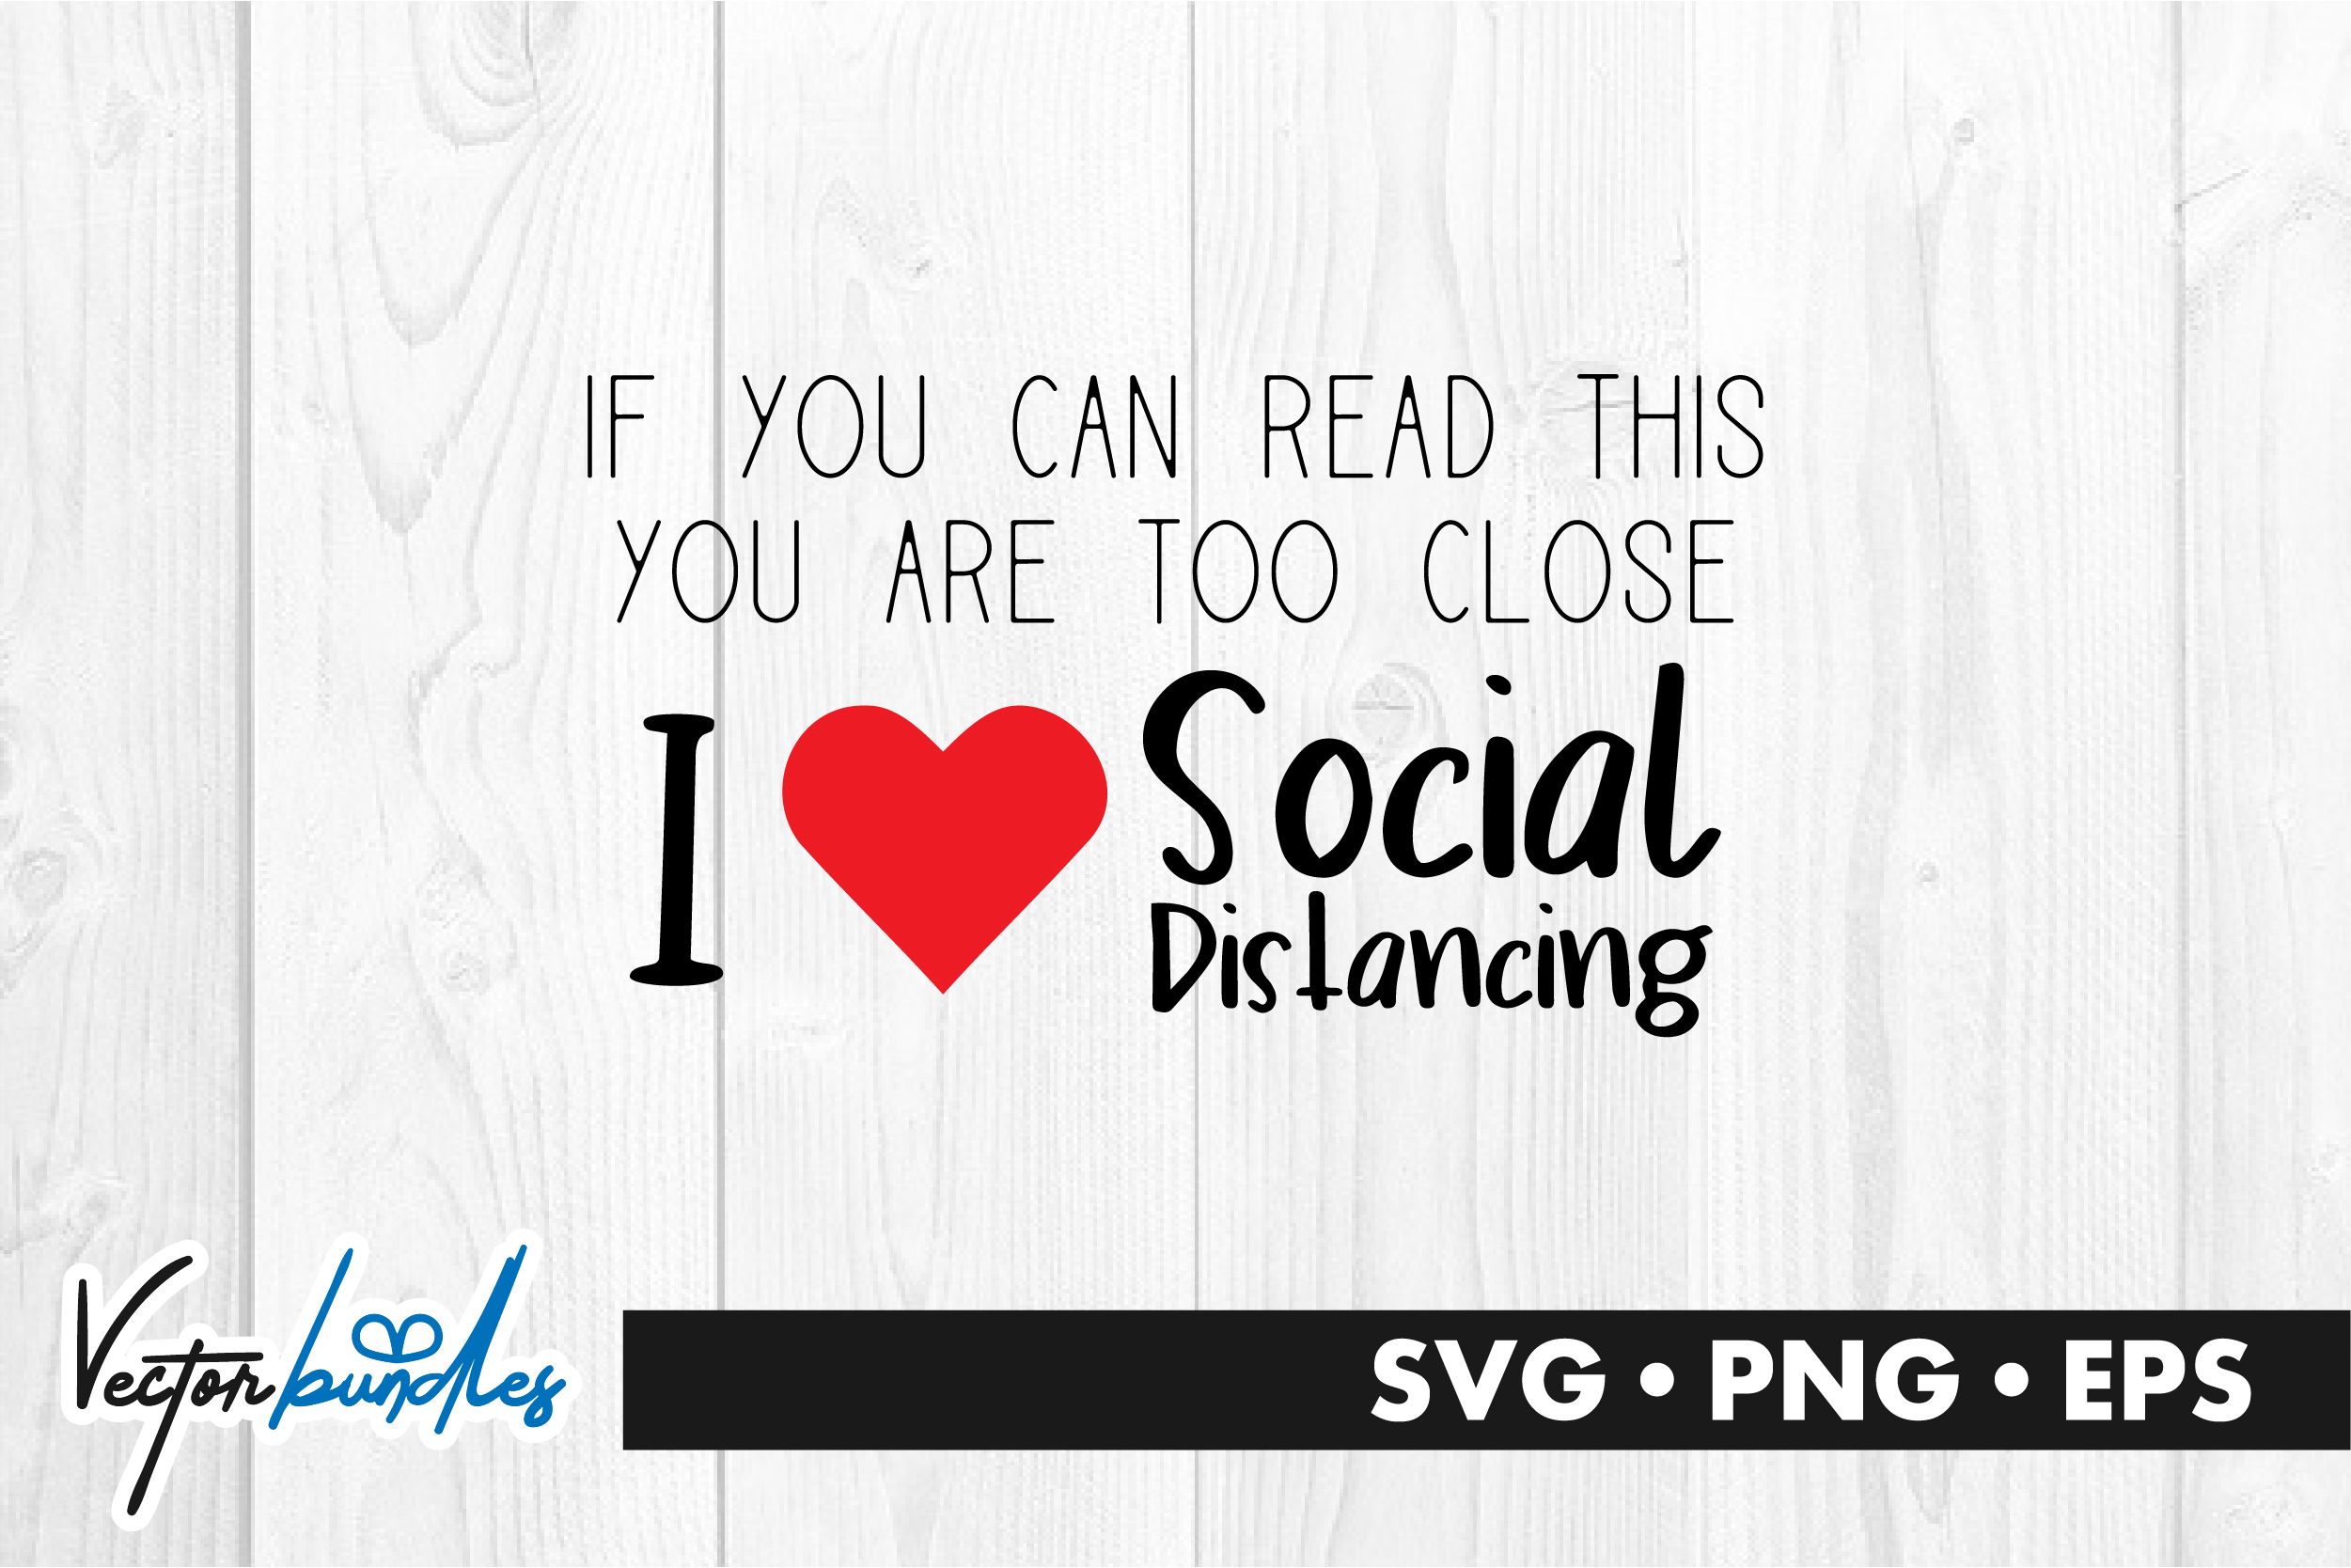 Download Free I Love Social Distancing Quote Graphic By Vectorbundles for Cricut Explore, Silhouette and other cutting machines.